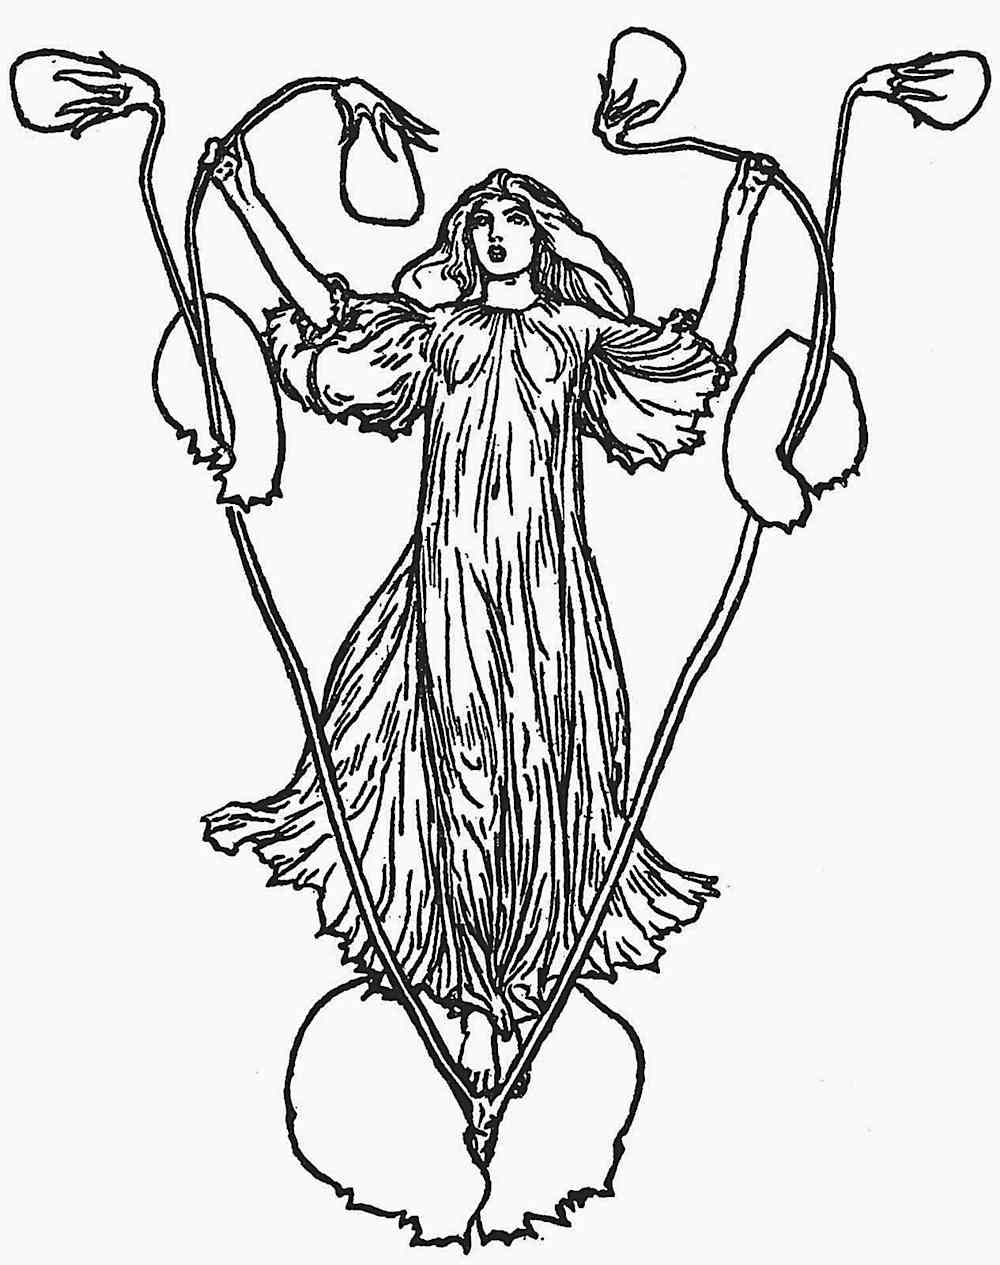 a Robert Anning Bell illustration of a fairy or faerie on a weed plant in a field